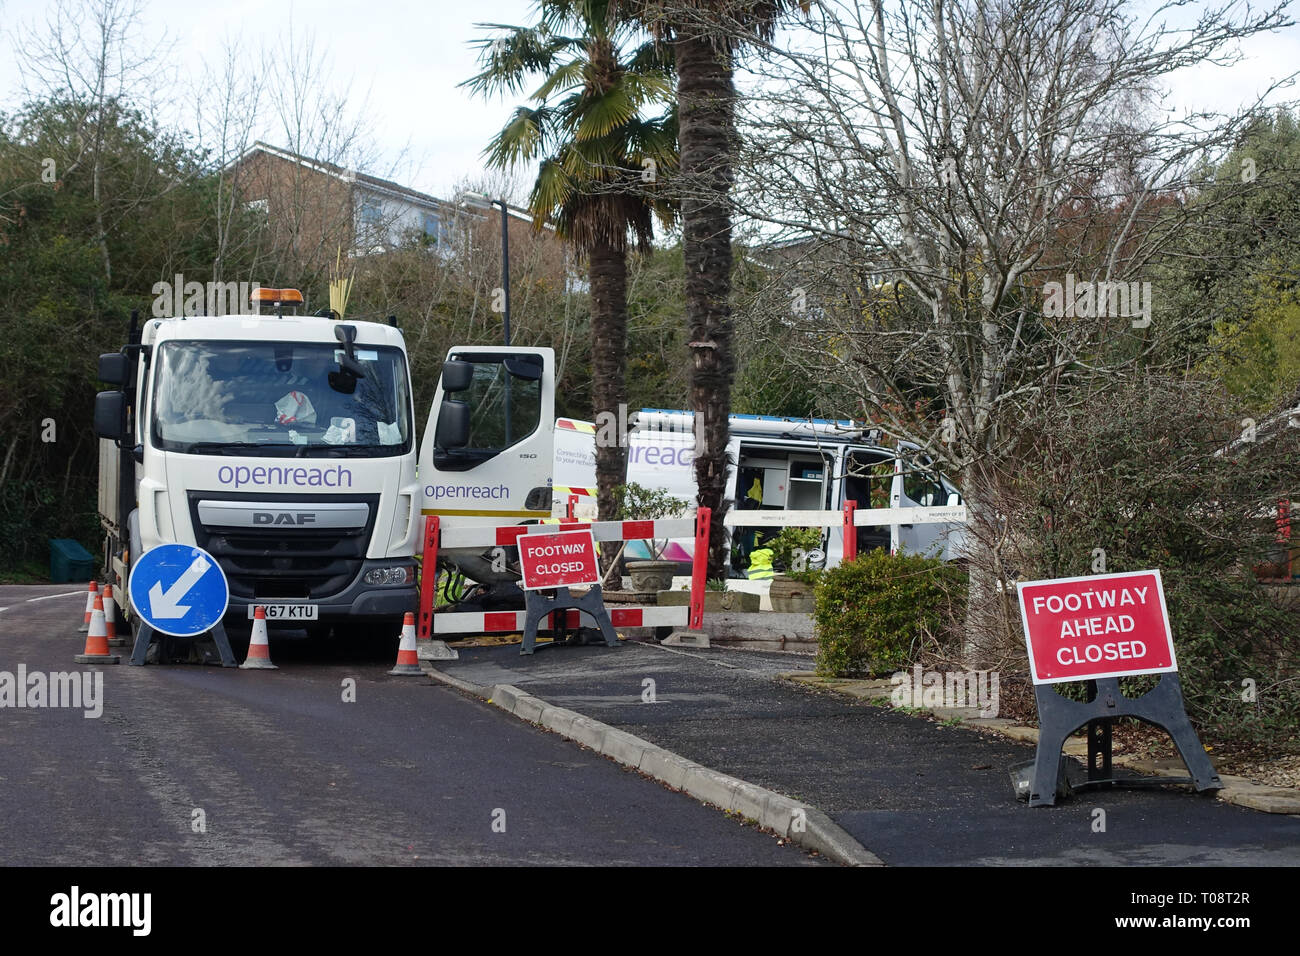 openreach-contractors-working-to-repair-